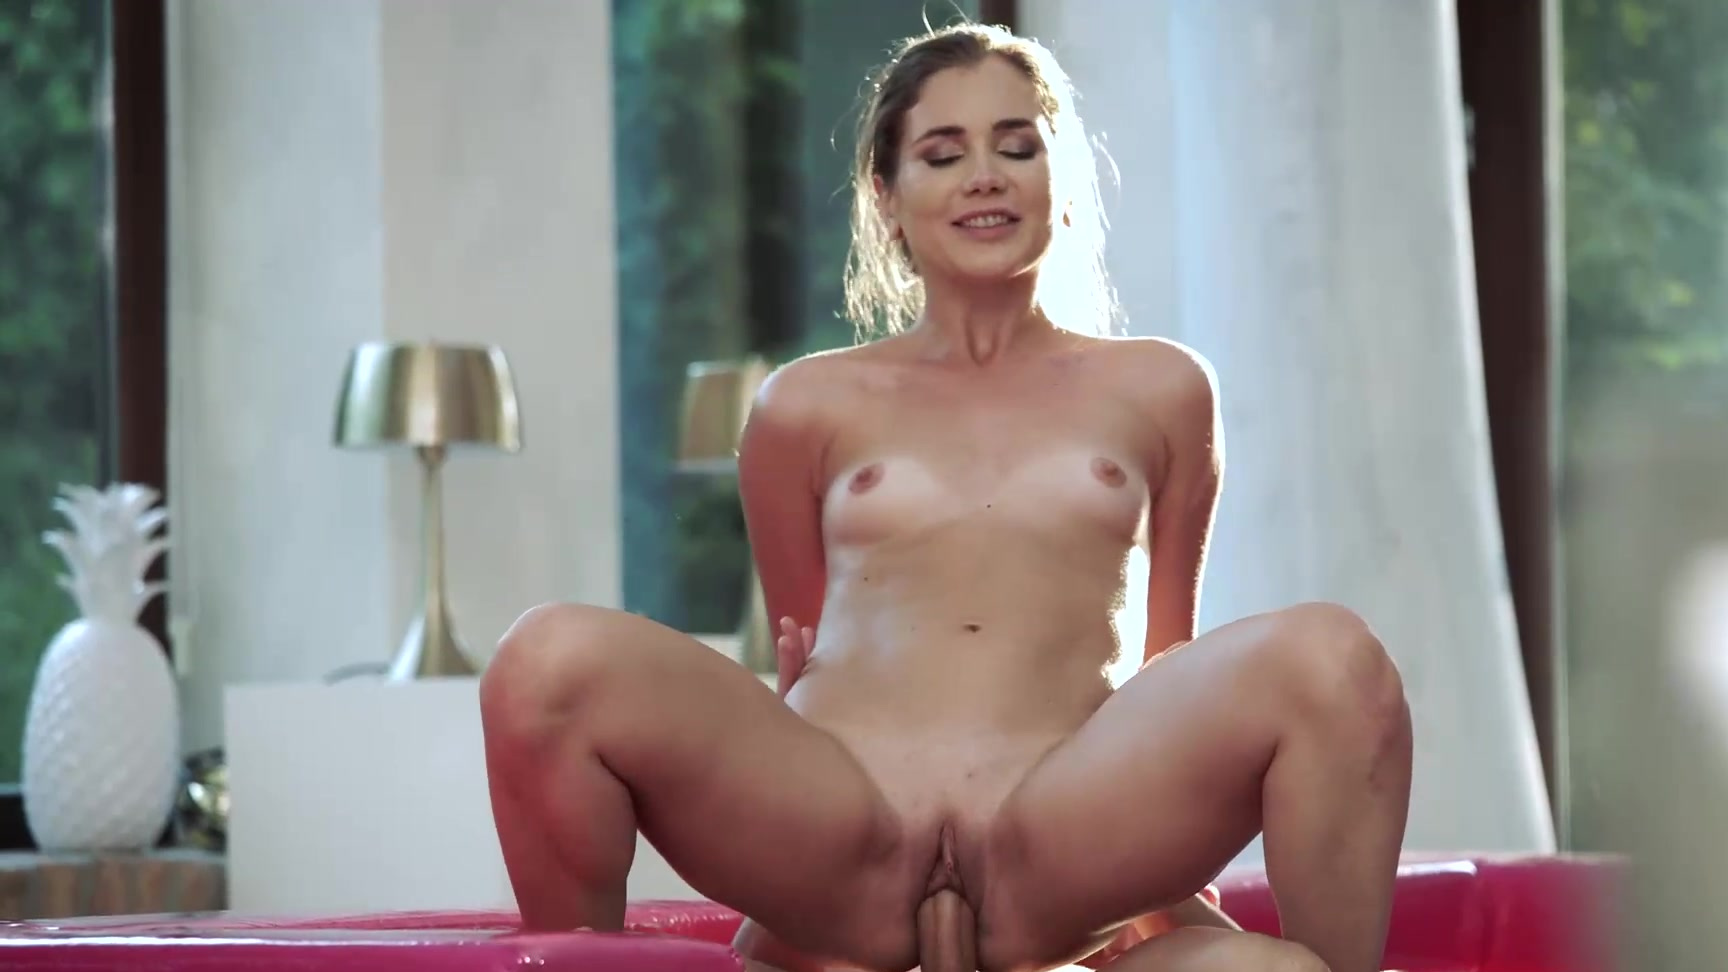 Pounding Her Little Pussy